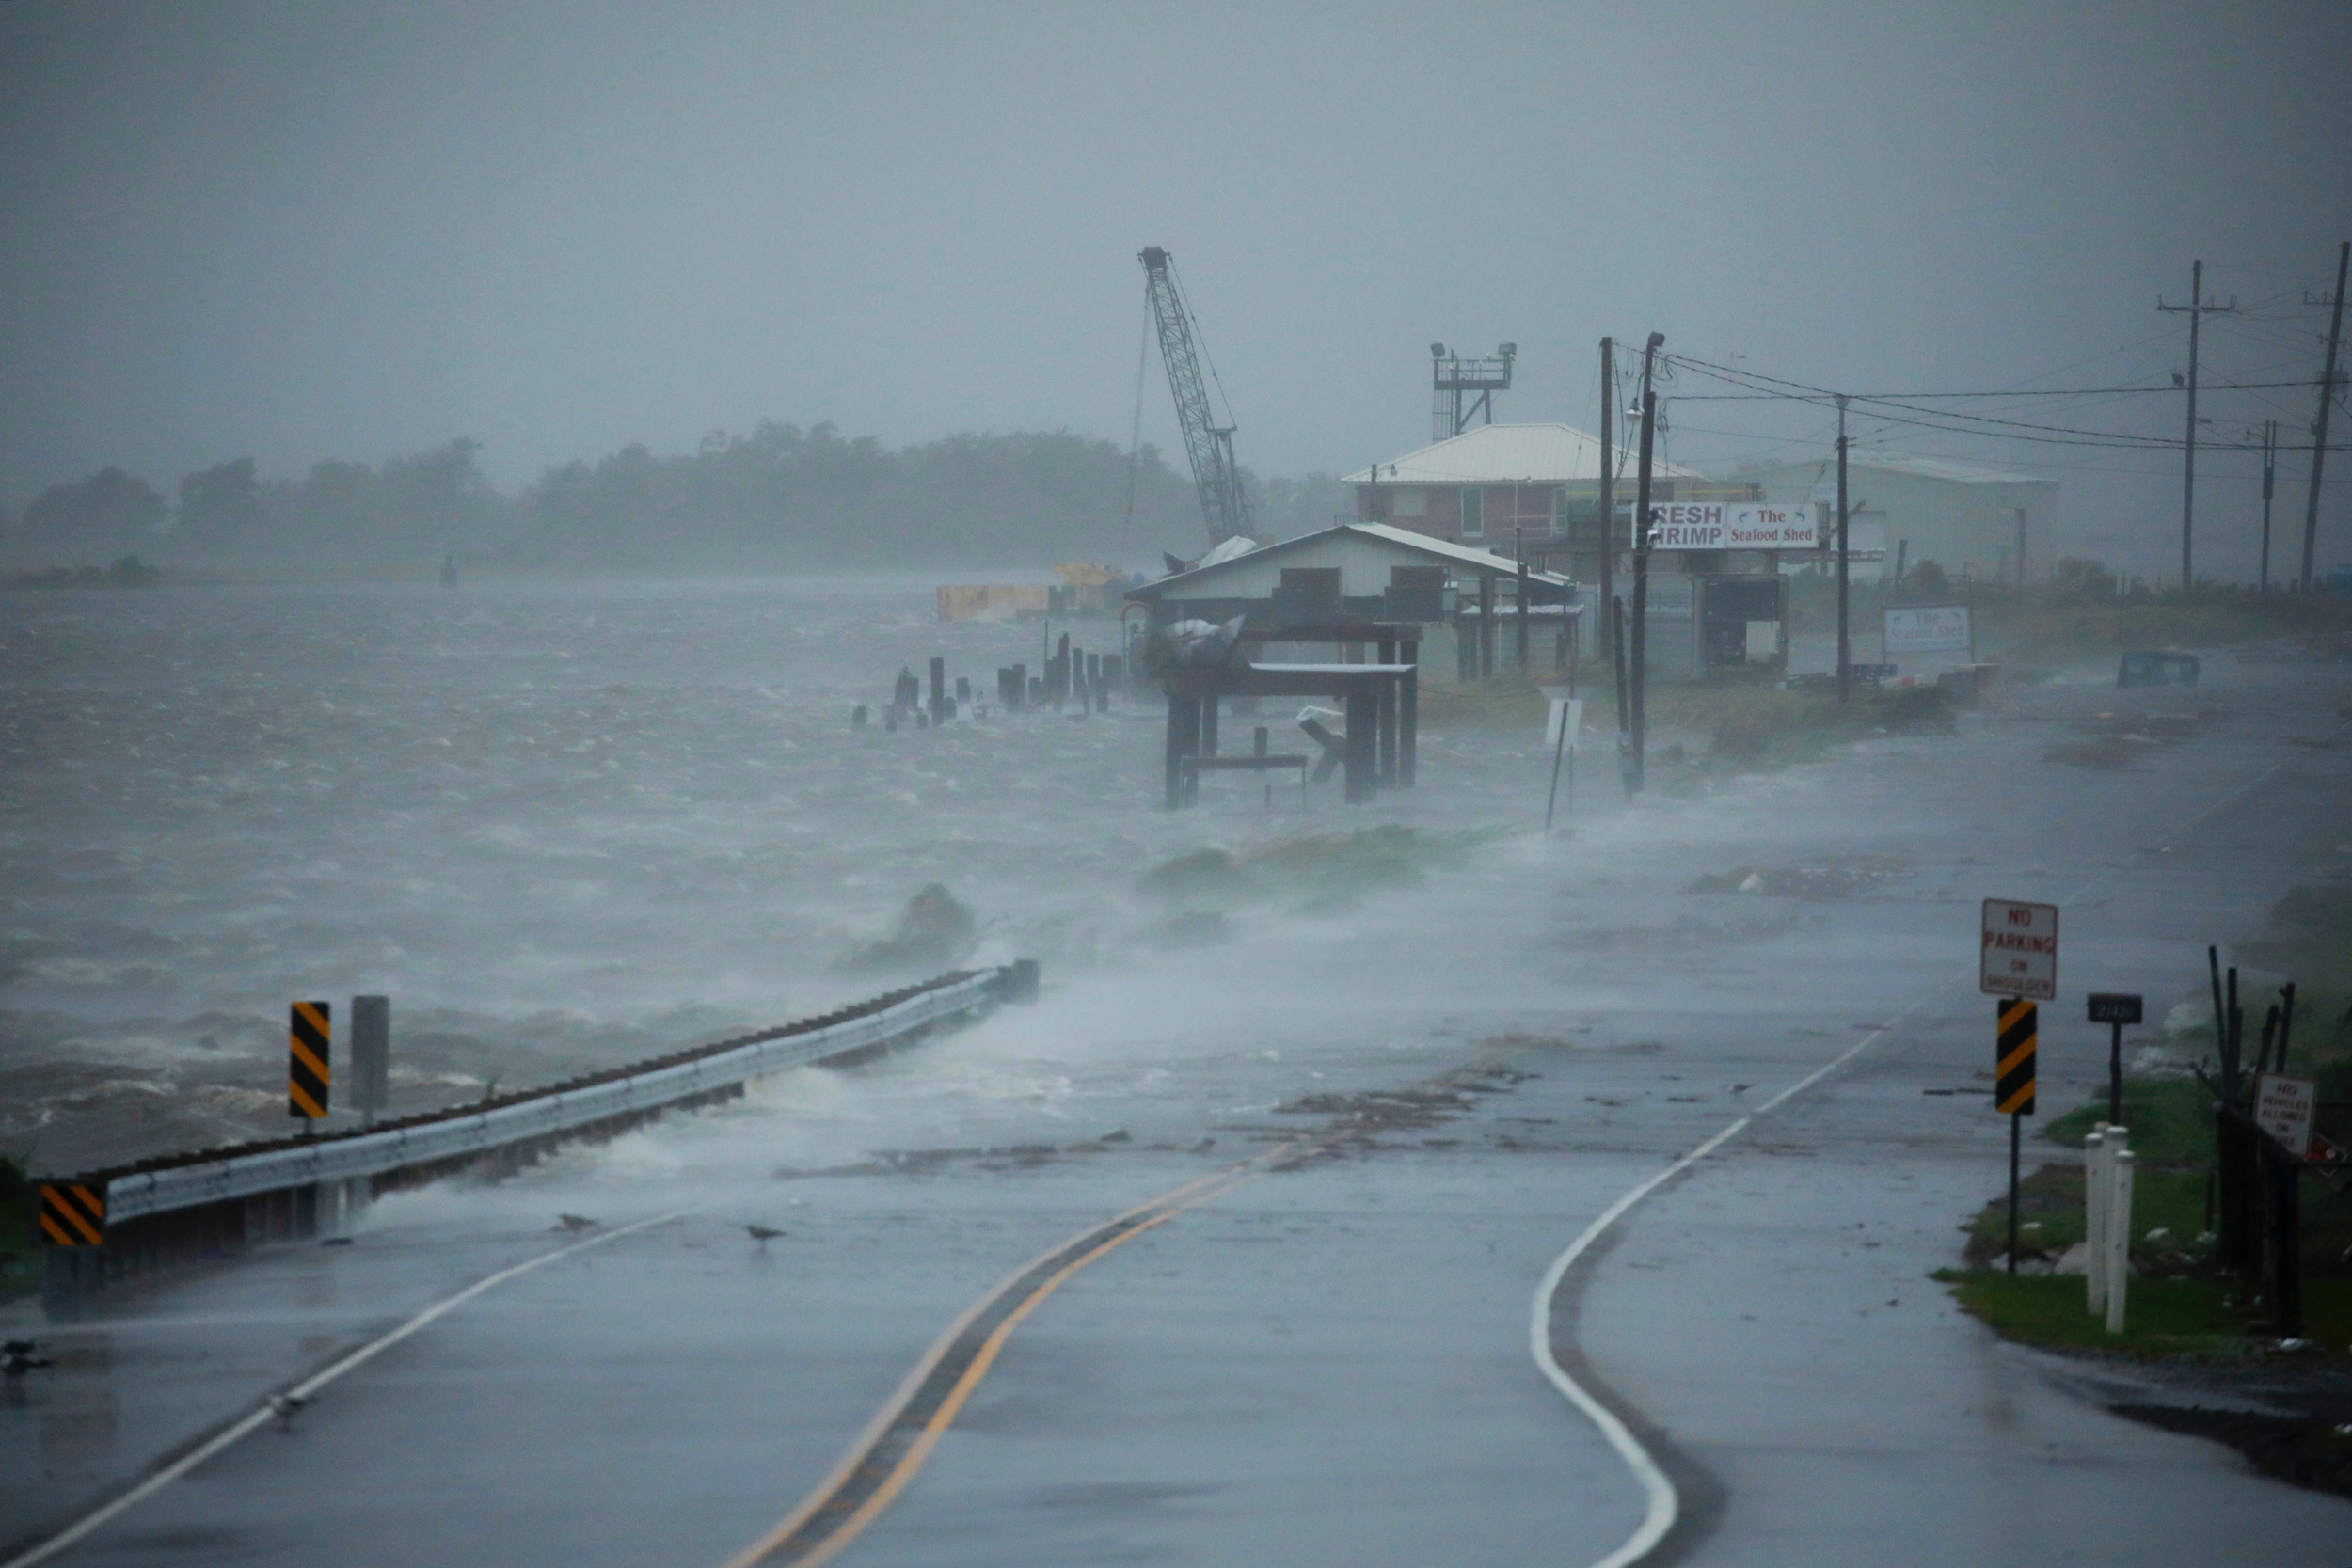 First Casualty, Millions Left Without Power, As Hurricane Ida Makes Landfall In Louisiana